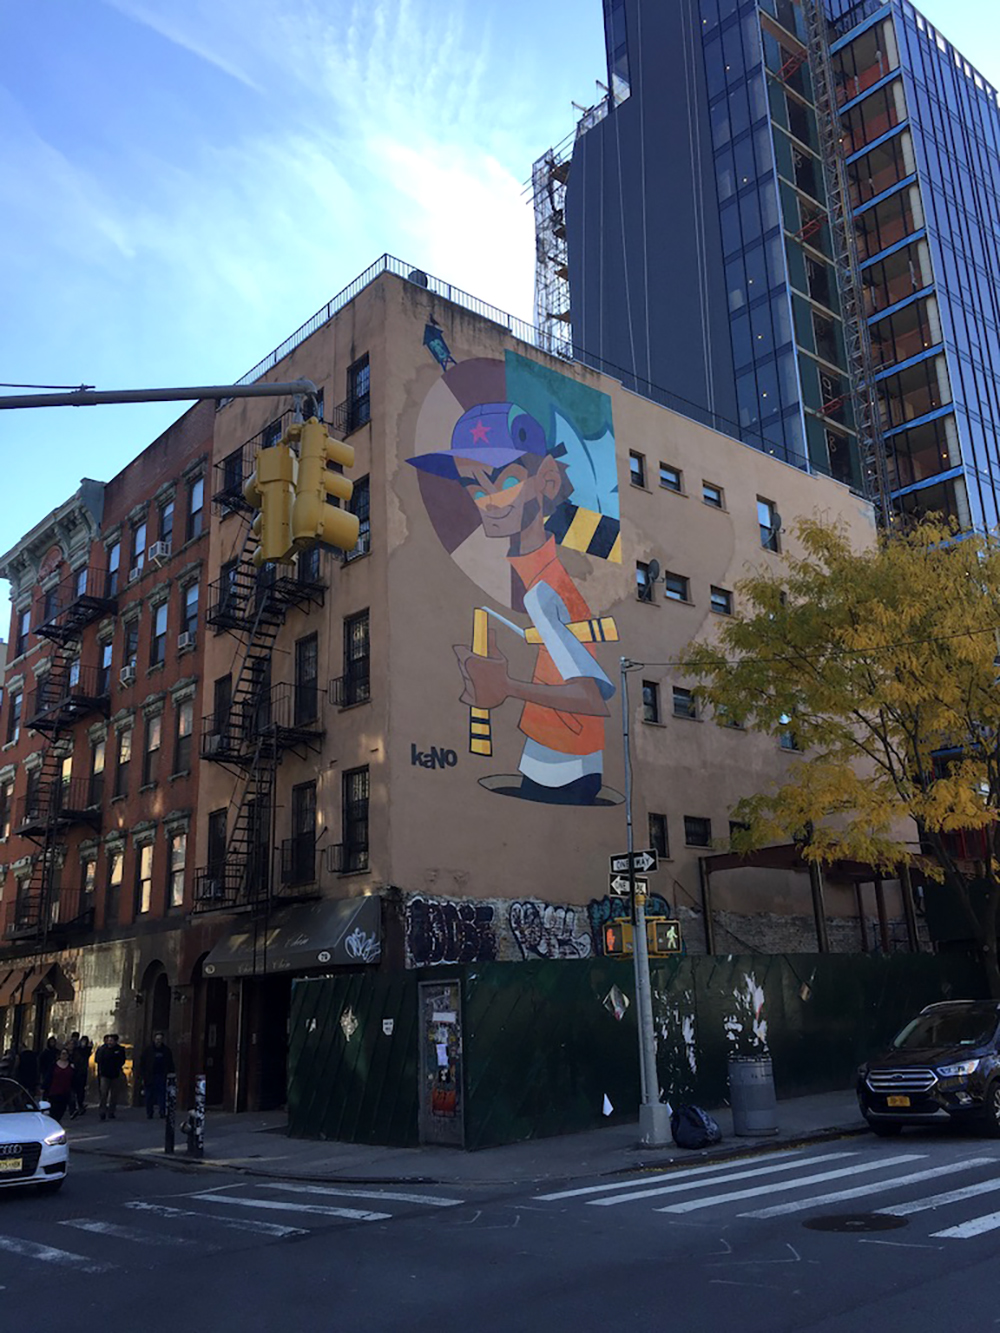 Mural on the side of a building in New York City